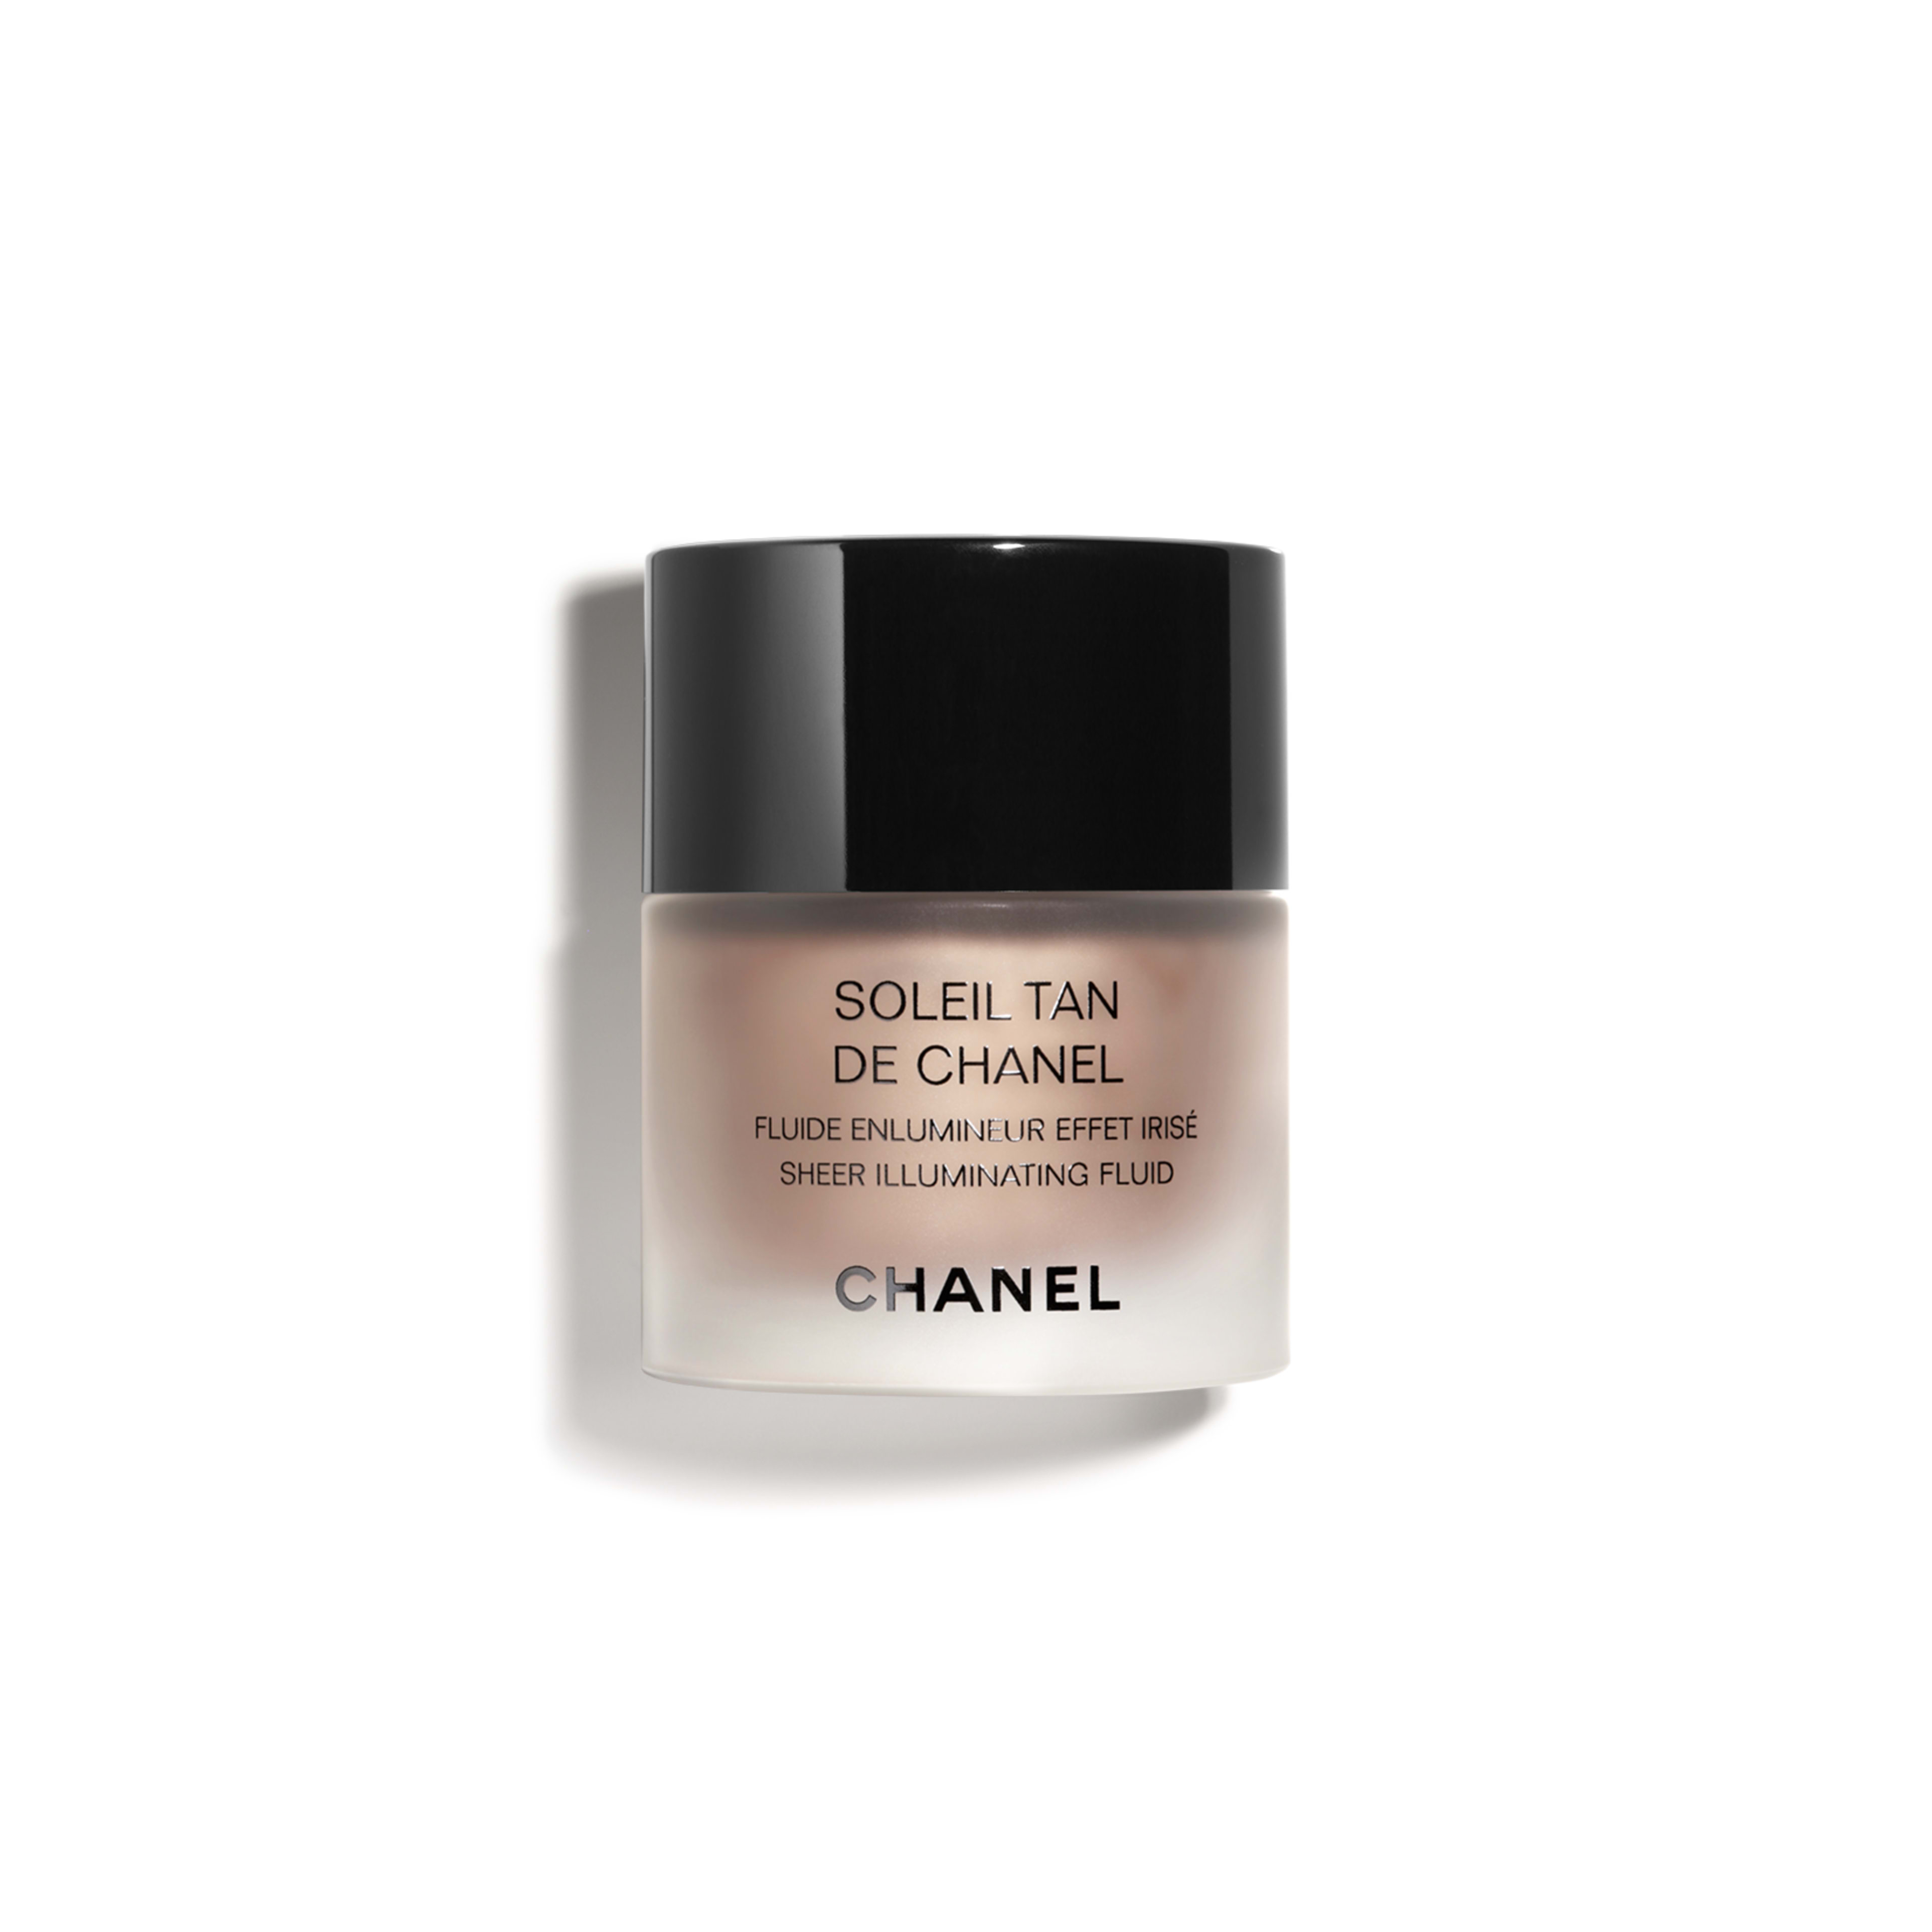 SOLEIL TAN DE CHANEL - makeup - 1FL. OZ. - Default view